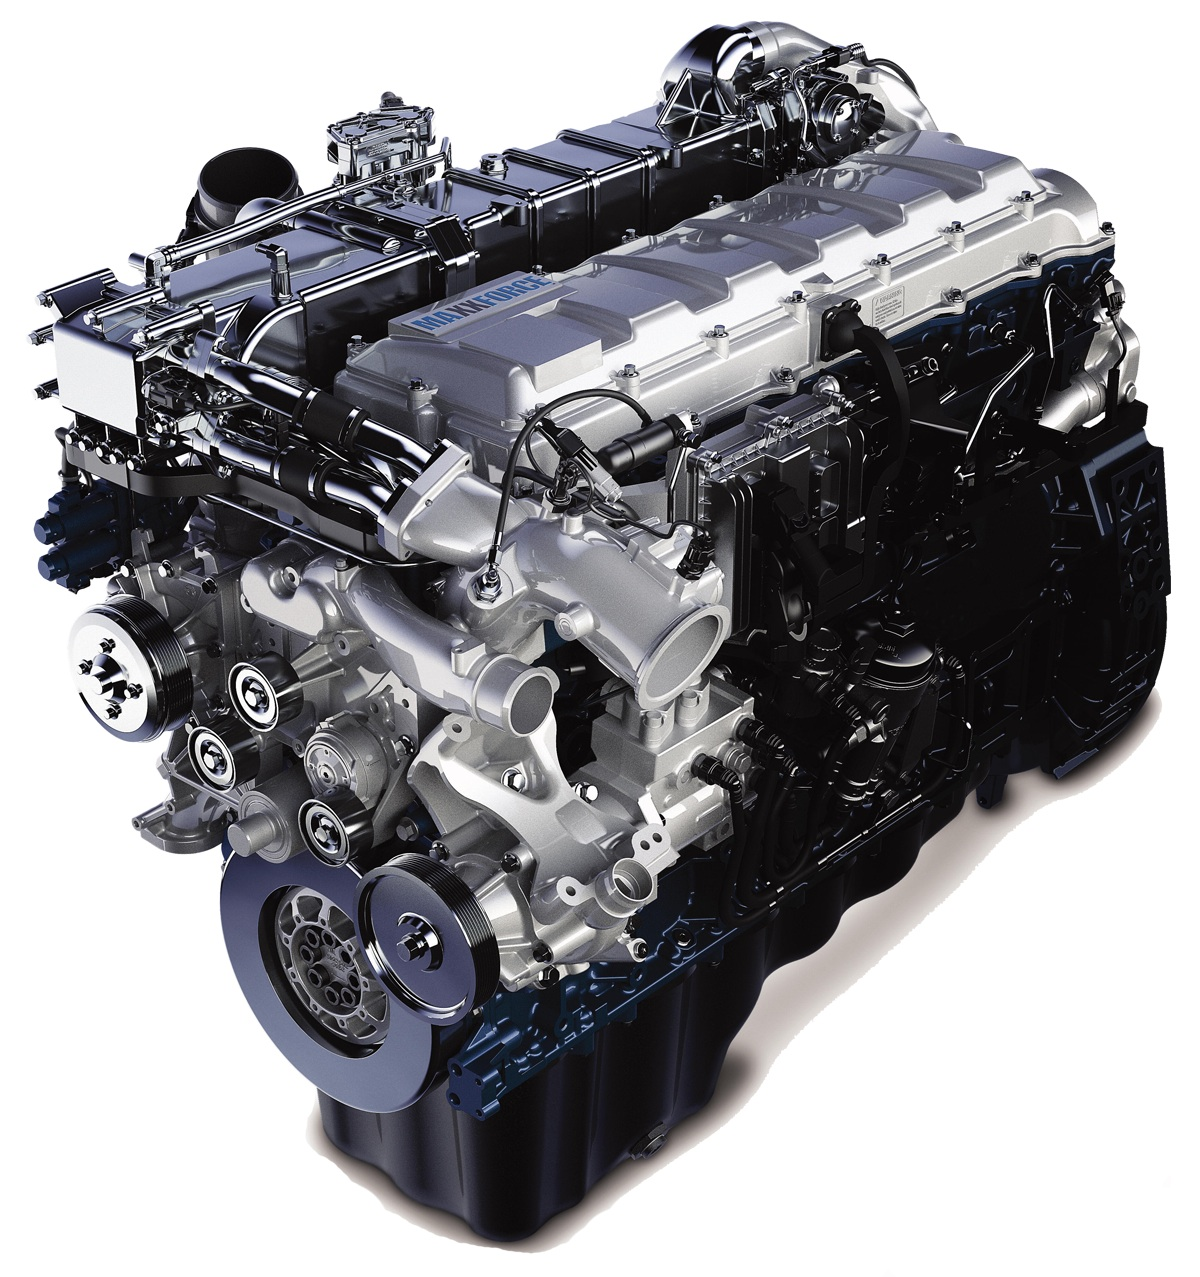 Navistar Close to Settlement with Shareholder for False EGR Diesel Engine Claims